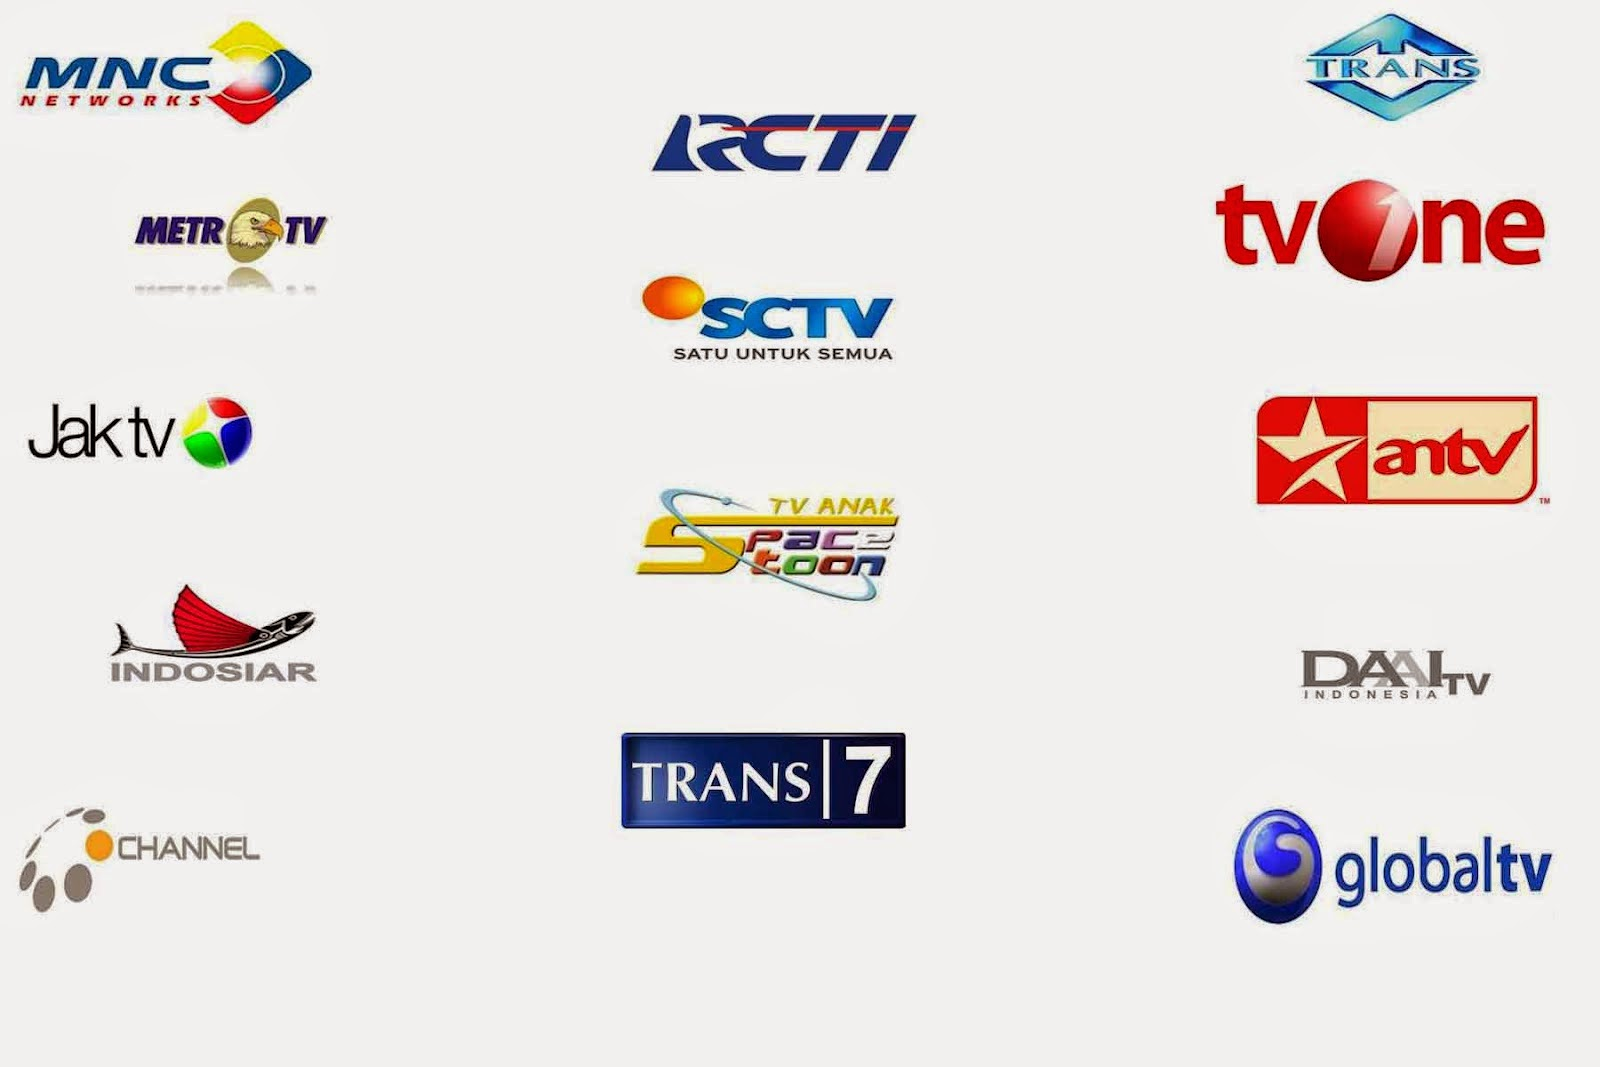 tv online indonesia tv online indonesia sctv tv online indonesia antv tv online indonesia rcti tv online indonesia trans7 tv online indonesia hd tv online indonesia streaming tv online indonesia indosiar tv online indonesia apk tv online indonesia terlengkap tv online indonesia trans tv tv online indonesia android tv online indonesia antv live tv online indonesia terbaik tv online indonesia global tv tv online indonesia tv one tv online indonesia gratis tanpa buffering tv online indonesia no buffering tv online indonesia mivo tv online indonesia paling cepat tv online indonesia application tv online indonesia all channel tv online indonesia android terbaik tv online indonesia apk android tv online indonesia antv tanpa buffering tv online indonesia amin tv online indonesia aplikasi tv online indonesia amin raha tv online indonesia ayo cari tv online animax indonesia tv online adults indonesia tv online anime indonesia tv online indonesia untuk android mivo tv online indonesia antv tv online indonesia blog amin free tv online indonesia antv tv online indonesia bola tv online indonesia blogspot tv online indonesia beritasatu tv online indonesia bein sport tv online indonesia bein sport 3 tv online indonesia blackberry tv online indonesia b channel tv online indonesia binus tv online indonesia blog tv online indonesia bb tv online indonesia bebas acak tv online indonesia buat hp tv online indonesia buffer cepat tv online indonesia bein sport 2 tv online bahasa indonesia tv online bola indonesia vs malaysia tv online bloomberg indonesia tv online buatan indonesia tv online bola indonesia malaysia tv online indonesia cepat tv online indonesia com tv online indonesia channel lengkap tv online indonesia channel indosiar tv online indonesia channel tv online indonesia cinta tv online indonesia cn tv online indonesia cartoon network tv online indonesia channel 4 tv online cartoon indonesia watch tv online indonesia channels mivo tv online indonesia channel tv online indonesia full channel tv online indonesia semua channel tv online indonesia vs china tv online indonesia o channel tv online indonesia koneksi cepat tv online indonesia download tv online indonesia dan internasional terlengkap tv online indonesia di android tv online indonesia dan luar negeri tv online indonesia dan dunia tv online indonesia dan mancanegara tv online indonesia dewasa tv online indonesia di hp tv online indonesia di blackberry tv online indonesia di iphone tv online indonesia di ipad tv online indonesia di hp symbian tv online indonesia di facebook tv online indonesia di bb tv online indonesia di e63 tv online dangdut indonesia tv online djarum indonesia open tv online drama indonesia tv online di indonesia terbaik tv online d indonesia tv online indonesia espn tv online indonesia e63 tv online indonesia.exe aplikasi tv online indonesia e63 tv online indonesia for nokia e63 embed tv online indonesia aplikasi tv online indonesia nokia e63 kode embed tv online indonesia embed code tv online indonesia aplikasi tv online indonesia untuk nokia e63 tv online indonesia untuk e63 aplikasi tv indonesia online untuk e71 tv online indonesia free tv online indonesia for android tv online indonesia fox sport tv online indonesia full hd tv online indonesia full screen tv online indonesia for pc tv online indonesia for ipad tv online indonesia for blackberry tv online indonesia for mobile tv online indonesia for bb tv online indonesia free sctv tv online indonesia format 3gp tv online indonesia for symbian tv online indonesia for e63 tv online indonesia for mac tv online free indonesia rcti tv online film indonesia tv online fox indonesia tv online indonesia gratis tv online indonesia global tv live tv online indonesia gratis antv tv online indonesia gratis trans tv tv online indonesia geratis tv online indonesia gratis indosiar tv online gratis indonesia lokal tv online gratis indonesia mnctv tv online indonesia terlengkap gratis tv streaming online indonesia gratis software tv online indonesia gratis tv online indonesia lengkap gratis mivo tv online indonesia gratis mnc tv online indonesia gratis tv online indonesia live gratis siaran tv online indonesia global tv online indonesia hd gratis tv online indonesia hot tv online indonesia hari ini tv online indonesia hd free tv online indonesia high quality tv online indonesia hp tv online indonesia hbo tv online indonesia lewat hp tv online indonesia kualitas hd tv online indonesia untuk hp streaming tv online indonesia hd tv online indonesia merah hitam nonton tv online indonesia hd tv online indonesia untuk hp java tv online indonesia untuk handphone tv online indonesia indostreaming tv online indonesia indostar tv online indonesia indostreamix tv online indonesia ipad tv online indonesia indovision tv online indonesia idol tv online indonesia internet tv online indonesia internasional tv online indonesia imediabiz tv online islam indonesia tv online islami indonesia mivo tv online indonesia indosiar tv online indonesia dan internasional tv online indonesia untuk ipad siaran tv online indonesia indosiar nonton tv online indonesia indosiar situs tv online indonesia indosiar tv online indonesia jtv tv online indonesia jaktv tv online indonesia jernih tv online indonesia.jar tv indonesia online java mobile aplikasi tv online indonesia java download tv online indonesia jar download tv online indonesia java tv online indonesia untuk java tv online disney junior indonesia jadwal tv online indonesia aplikasi tv online indonesia untuk hp java jadwal acara tv online indonesia download tv online indonesia untuk hp java jadwal siaran tv indonesia online tv online indonesia k vision tv online indonesia kompas tv tv online indonesia kualitas rendah tv online indonesia kualitas bagus tv online indonesia kandangan tv online indonesia komplit tv online indonesia ku tv online indonesia kaskus tv online indonesia kualitas terbaik tv online kartun indonesia tv online indonesia vs korea online tv kristen indonesia tv online indonesia vs korsel tv online indonesia lbs k-drama nonton tv online indonesia kualitas hd tv online indonesia vs kamboja tv kabel online indonesia kode tv online indonesia tv online indonesia live tv online indonesia live streaming tv online indonesia low quality tv online indonesia lancar tv online indonesia lengkap tanpa buffering tv online indonesia low bandwidth tv online indonesia lengkap dan cepat tv online indonesia live rcti tv-online-indonesia-live-streaming.html tv online indonesia live antv tv online indonesia langsung tv online indonesia live streaming lengkap update tv online indonesia live sctv tv online indonesia low tv online indonesia lokal gratis tv online indonesia lbs tv online indonesia mnc tv online indonesia metro tv tv online indonesia mobile tv online indonesia mnc sport tv online indonesia mnc sport 2 tv online indonesia mito tv online indonesia mwb tv online metro tv indonesia tv online indonesia merah tv online indonesia melalui hp tv online indonesia mnc sport 1 tv online musik indonesia tv online music indonesia tv online muslim indonesia tv online mtv indonesia tv online movie indonesia tv online mobile indonesia free tv online indonesia vs malaysia tv online indonesia net tv online indonesia nonton tv streaming online tv online indonesia net lokal trans 7 tv online indonesia nonton bola tv online indonesia net lokal indosiar tv online indonesia net lokal metro tv online indonesia no 1 tv online indonesia net lokal tvri tv online indonesia news tv online indonesia non buffer tv online ndtv indonesia tv online indonesia vs netherlands tv online indonesia net tv lokal tv online indonesia online tv online one indonesia tv online orange indonesia tv one online indonesia streaming nonton online tv one indonesia tv one online indonesia sctv tv one indonesia online free mivo tv one online indonesia tv one indonesia news online nonton orange tv indonesia online watch online tv one indonesia tv online indonesia pro tv online indonesia poztmo tv online indonesia paling ringan tv online indonesia paling bagus tv online indonesia pc tv online pertandingan indonesia vs singapura download tv online indonesia pc tv online indonesia yang paling bagus tv online indonesia tanpa putus aplikasi tv online indonesia pc download tv online indonesia program tv online indonesia vs philippine download aplikasi tv online indonesia pc download software tv online indonesia pc aplikasi tv online indonesia untuk pc download tv online indonesia untuk pc play tv online indonesia portal tv online indonesia tv online fox movies premium indonesia tv online indonesia hd quality tv online indonesia ringan tv online indonesia rtv tv online indonesia rcti tanpa buffering tv online indonesia rcti sctv tv online indonesia rcti live tv online indonesia rcti gratis tv online indonesia rcti free tv online indonesia rcti transtv globaltv dan sctv tv online indonesia rcti transtv html tv-online-indonesia-rcti-transtv tv online indonesia rscti tv online indonesia rcti transtv globaltv dan ... - blog amin tv online rcti indonesia lancar tv online rcti indonesia vs malaysia tv online radio indonesia tv online rcti indonesia vs vietnam tv online rcti indonesia vs belanda tv online rcti indonesia vs korea tv online rcti indonesia idol tv online indonesia sctv tanpa buffering tv online indonesia streaming tercepat tv online indonesia siaran langsung sctv tv online indonesia sport tv online indonesia streaming cepat tv online indonesia streaming rcti tv online indonesia streaming mobile tv online indonesia super league tv online indonesia software tv online streaming indonesia trans7 tv online indonesia streaming free tv online streaming indonesia sctv tv online spacetoon indonesia tv online streaming indonesia live tv online subtitle indonesia tv online shopping indonesia tv online streaming indonesia gratis tv online indonesia terbaik untuk android tv online indonesia tvri tv online indonesia tanpa buffering tv online indonesia tanpa macet tv online indonesia tanpa buffer tv online indonesia tercepat tanpa buffering tv online indonesia tercepat terlengkap tv online indonesia tanpa loading tv online indonesia tanpa lelet tv online indonesia terlengkap free tv online indonesia untuk laptop tv online indonesia u19 tv online indonesia untuk blackberry tv online indonesia u19 vs uzbekistan tv online indonesia untuk bb tv online indonesia untuk pc tv online indonesia untuk iphone tv online indonesia untuk symbian tv online uhf indonesia aplikasi tv online indonesia untuk blackberry aplikasi tv online indonesia untuk android tv online indonesia vs maladewa tv online indonesia vs thailand tv online indonesia via android tv online indonesia vs timor leste tv online indonesia vs australia tv online indonesia vs uzbekistan tv online indonesia vs belanda tv online indonesia vs singapura tv online indonesia vs laos tv online indonesia via hp tv online indonesia vs filipina tv online indonesia vs arab tv online indonesia vs myanmar tv online indonesia vs chelsea tv online indonesia vs liverpool tv online indonesia vs kamerun tv online indonesia vs arsenal tv online indonesia webs tv online indonesia warung bebas watch tv online indonesia sctv watch tv online indonesia rcti watch tv online indonesia antv widget tv online indonesia watch tv online indonesia trans7 watch tv online indonesia indosiar wap tv online indonesia wwww.tv online indonesia.com watch tv online indonesia channel indonesia tv online watch live free alamat web tv online indonesia watch live tv online indonesia free watching tv online indonesia watch global tv online indonesia tv online x factor indonesia xem tv online indonesia tv online indonesia yang lancar tv online indonesia yang ringan tv online indonesia youtube tv online indonesia yang tidak buffering tv online indonesia yang cepat tv online indonesia yang lengkap tv online indonesia yang bagus yahoo tv online indonesia youtube tv online indonesia tv online yang ada di indonesia tv online sctv indonesia lancar tv online sctv indonesia vs malaysia tv online sctv indonesia vs myanmar mivo tv online indonesia sctv tv online indonesia gratis sctv nonton tv online indonesia sctv situs tv online indonesia sctv update tv online indonesia sctv tv online indonesia net lokal sctv siaran tv indonesia online sctv tv online indonesia rcti sctv global tv movie tv indonesia online sctv blog amin tv online indonesia rcti transtv globaltv dan sctv tv online indonesia sctv free tv online indonesia sctv live sctv tv online live streaming indonesia siaran tv online indonesia antv nonton tv online indonesia antv tv online streaming indonesia antv tv online indonesia net lokal antv mivo tv online indonesia rcti binus tv online indonesia rcti siaran tv online indonesia-rcti aku cinta indonesia tv online rcti channel tv indonesia online rcti rcti streaming tv indonesia online com download software tv online indonesia rcti situs tv online di indonesia rcti nonton tv online gratis indonesia rcti rcti global tv streaming online indonesia tv online indonesia net lokal rcti tv online indonesia live streaming rcti mivo tv online indonesia live streaming rcti situs tv online rcti indonesia mivo indonesia tv one online rcti tv online rcti indonesia rcti tv online indonesia rcti streaming amin raha blogspot 2011 online indonesia rcti trans tv amin rahaa blogspot 2013 online indonesia rcti trans tv tv online rcti indonesia vs thailand update tv online indonesia ( rcti ) tv online indonesia gratis trans7 nonton tv online indonesia trans7 situs tv online indonesia trans7 free online tv indonesia trans7 mivo tv indonesia online trans7 siaran tv online indonesia trans7 tv online live indonesia trans7 tv online indonesia net lokal trans7 situs tv online indonesia hd global tv indonesia online hd tv online indonesia android apk tv online indonesia.com tv online indonesia global tv online indonesia gratis dan cepat tv online indonesia hq tv online indonesia live streaming lengkap tv online indonesia metro tv online indonesia spacetoon tv online indonesia s60v3 tv online indonesia symbian tv online indonesia sakeena tv online indonesia s60v5 tv online indonesia selain mivo tv online indonesia server lokal tv online indonesia s60v2 tv online indonesia tercepat tv online indonesia tvone tv online indonesia tpi tv online indonesia telkomvision tv online indonesia tanpa streaming tv online indonesia terbaru tv online indonesia telkom speedy tv online indonesia tidak buffering tv online indonesia vs malaysia aff 2012 tv online streaming indonesia indosiar tv online streaming indonesia lengkap tv online streaming indonesia tanpa buffering tv online streaming indonesia trans aplikasi streaming tv online indonesia tv online indonesia live streaming tanpa buffering nonton tv online streaming indonesia tanpa buffering cara pasang tv streaming online indonesia di blog tv channel online streaming indonesia tv online streaming dewasa indonesia daai tv indonesia online streaming online tv streaming di indonesia download tv online indonesia live streaming free tv online indonesia stream tv online live streaming free indonesia watch tv online free streaming indonesia tv indonesia online streaming for ipad watch live tv indonesia online free streaming global tv online indonesia streaming live streaming tv indonesia online gratis mivo-tv-online-indonesia-live-streaming.html mivo-tv-online-tv-streaming-indonesia.html mivo tv online indonesia live streaming tv online streaming lokal indonesia global tv indonesia online live streaming tv online free streaming live indonesia tv online live streaming indonesia tv one mnc tv indonesia online streaming live tv streaming watch live streaming tv online indonesia nonton tv online live streaming indonesia metro tv indonesia live streaming online tv online streaming indonesia metro tv tv online streaming indonesia mnc tv streaming tv online indonesia mivo net tv online streaming indonesia nonton tv online streaming indonesia nonton tv streaming online indonesia gratis tv online indonesia no streaming orange tv indonesia streaming online indonesia live radio & tv online streaming streaming tv shows online indonesia streaming tv online indonesia tpi radio online tv online cctv online streaming indonesia terlengkap mivo tv online tv streaming indonesia streaming tv online indonesia global tv radio online tv online cctv online streaming indonesia terlengkap.htm streaming tv online indonesia net tv streaming tv online global tv indonesia tv metro tv online streaming tv indonesia tv online streaming indonesia trans tv watch tv online streaming indonesia watch live tv online free streaming indonesia free tv online indonesia indosiar tv indonesia online free indosiar tv online indonesia apk download tv online indonesia terlengkap 2011 download tv online indonesia terlengkap nonton tv online indonesia terlengkap software tv online indonesia terlengkap download tv online indonesia terlengkap gratis nonton tv online indonesia terlengkap dan tercepat nonton tv online indonesia terlengkap gratis download software tv online indonesia terlengkap mivo tv online indonesia terlengkap aplikasi tv online indonesia terlengkap tv online indonesia 2013 tercepat terlengkap channel tv online indonesia terlengkap tv online indonesia terlengkap dan tercepat tv online terlengkap di indonesia situs tv online indonesia terlengkap tv online streaming indonesia terlengkap tv online indonesia terlengkap tercepat tv online indonesia trans 7 nonton tv online indonesia trans tv tv online free indonesia trans tv situs tv online indonesia trans tv mivo tv indonesia online trans tv tv online indonesia mivo tv sctv mnctv rcti global trans tv watch tv online indonesia trans tv nonton tv indonesia online trans7 tv online indonesia trans tv live televisi online indonesia trans tv tv online trans tv trans 7 indonesia aplikasi tv online indonesia android download tv online indonesia android aplikasi tv online indonesia android terbaik app tv online indonesia android download aplikasi tv online indonesia android download tv online indonesia untuk android aplikasi tv online indonesia terbaik untuk android nonton tv indonesia online di android free download tv online indonesia for android download tv online indonesia for android